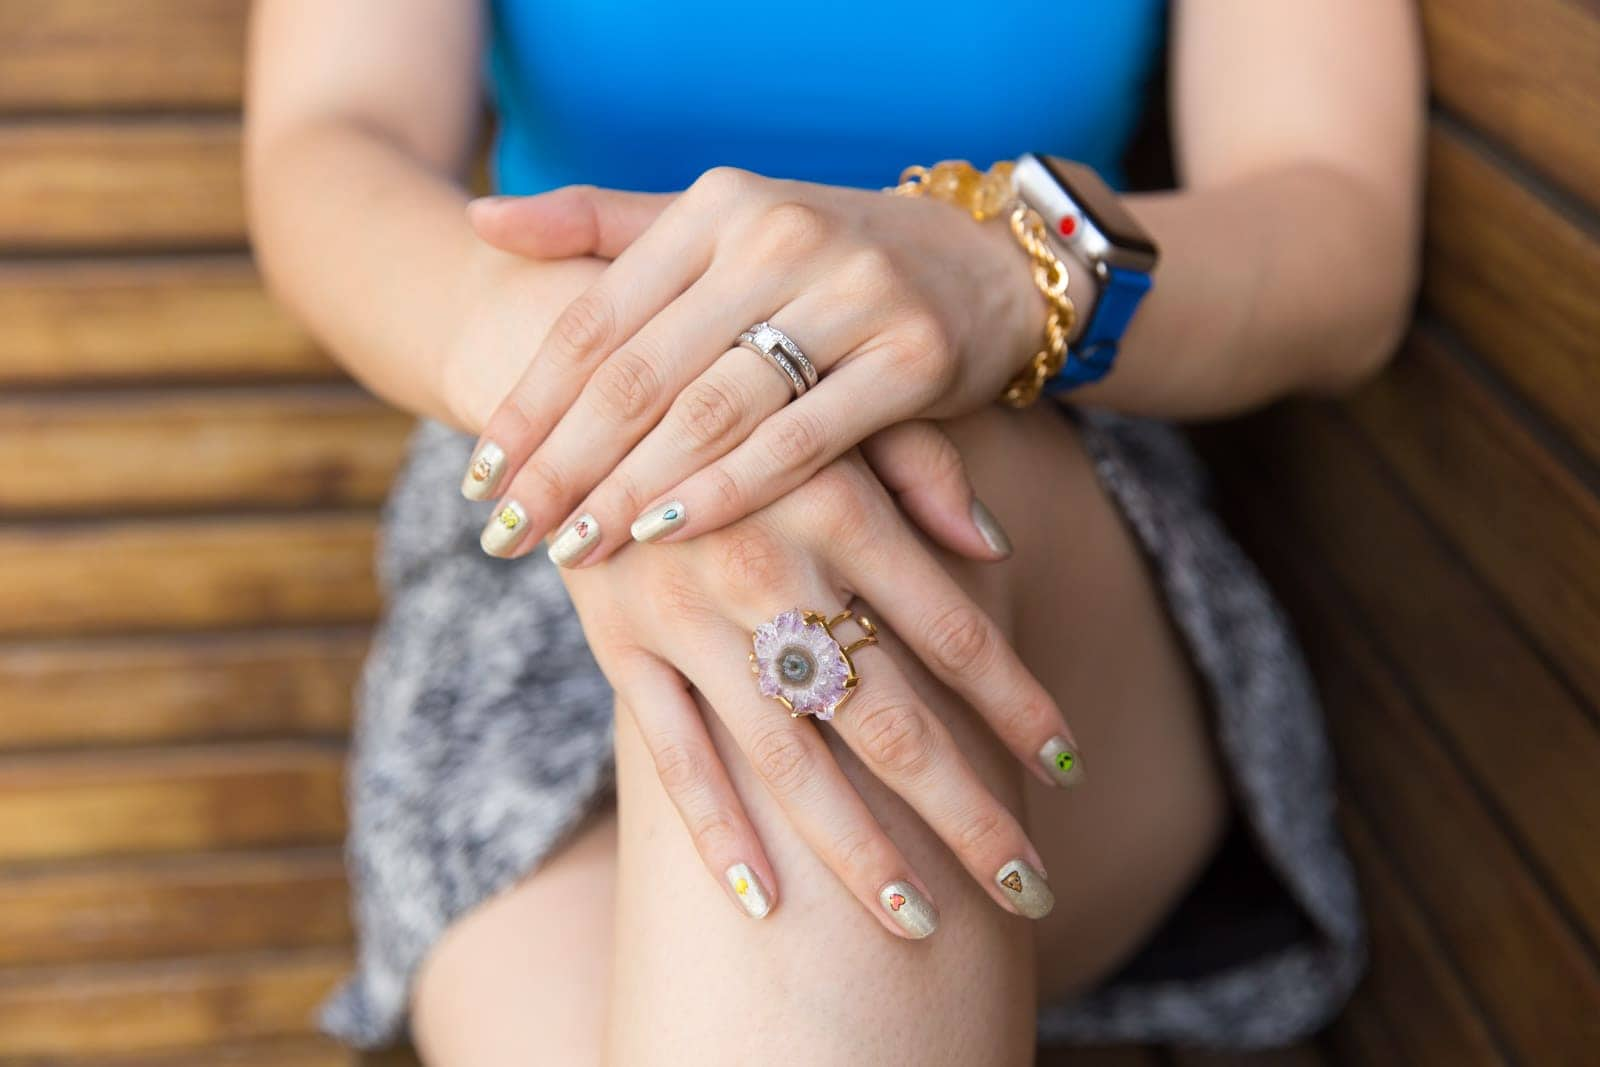 A close up of a woman's hands on top of each other, resting on her bent knee. She has a large purple amethyst ring on one hand, and a white gold engagement ring and wedding ring on the other. Her nails are a gold glitter colour with a small cartoon image on each nail.